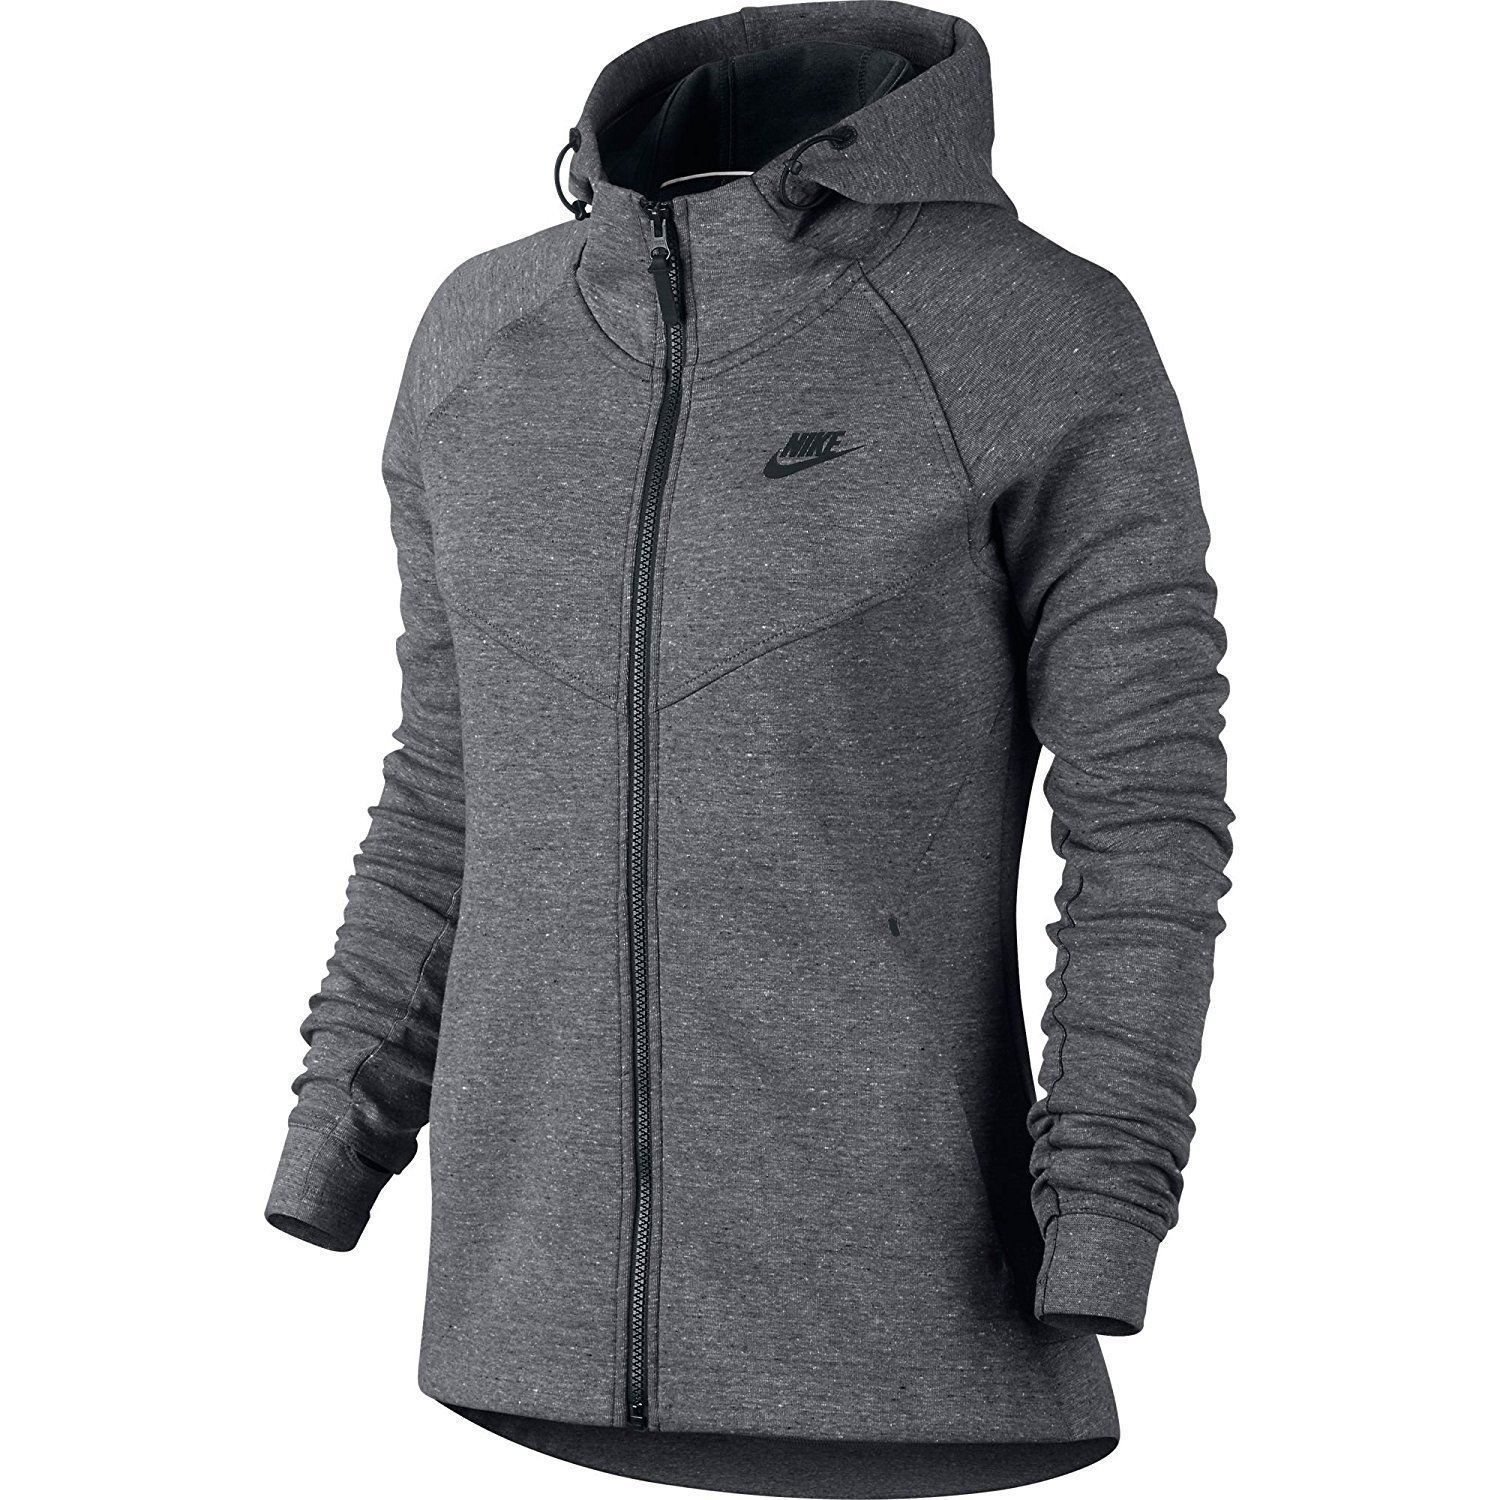 Pin by Anna253 on Black clothes Nike tech fleece, Nike